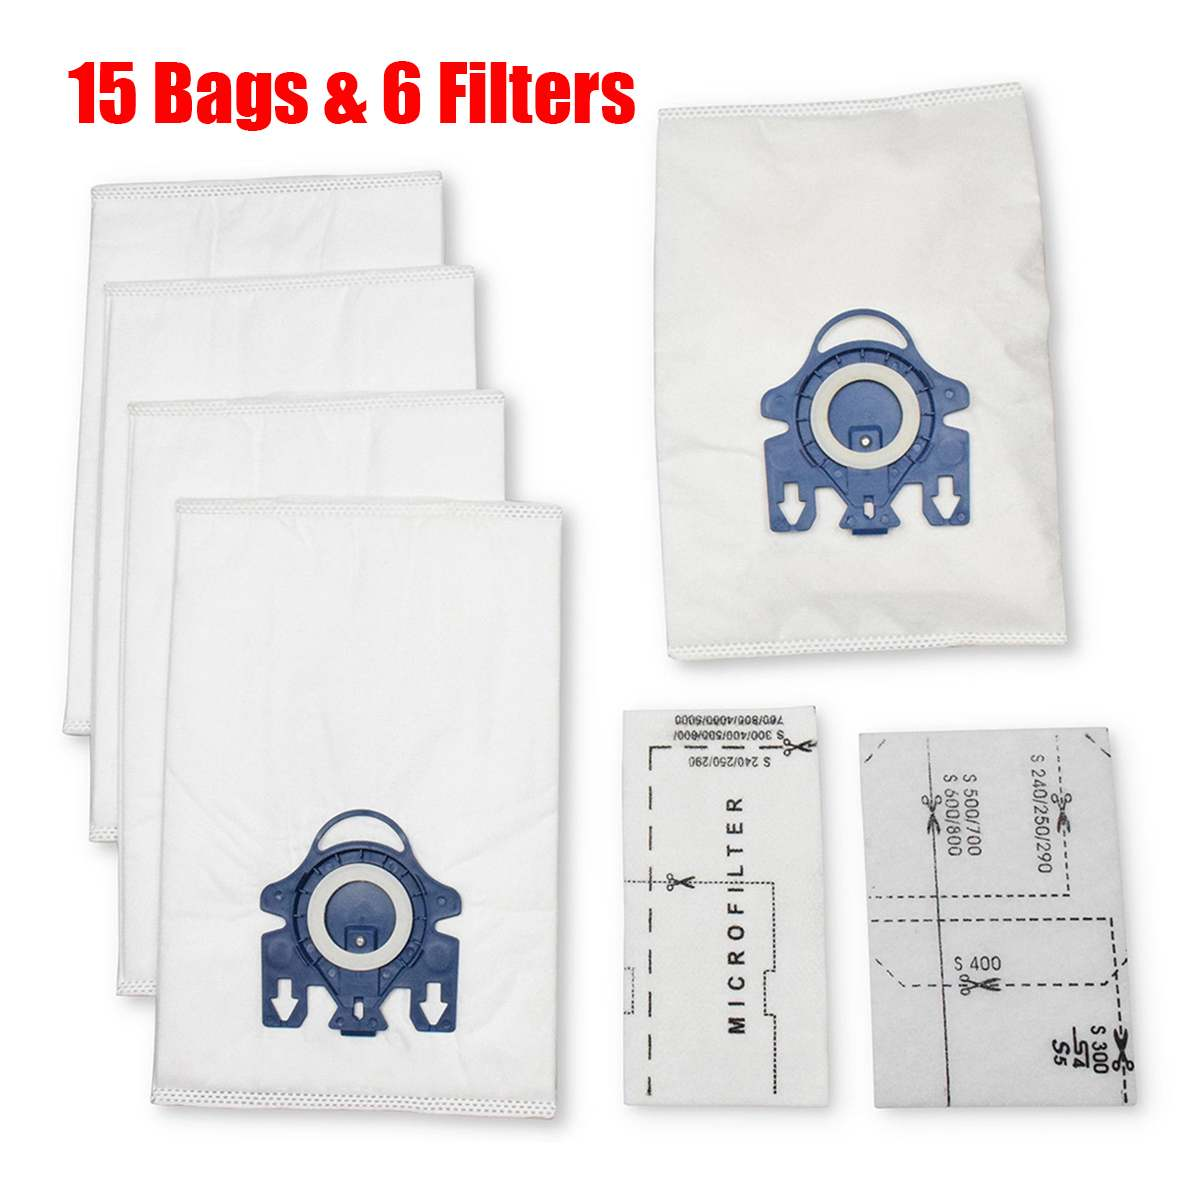 15Pcs/Set Air Vacuum Cleaner Dust Bags Filter Kit Home Dust Collector Aspirator Replacemnt Parts For Miele GN S2 S5 S8 S600 658